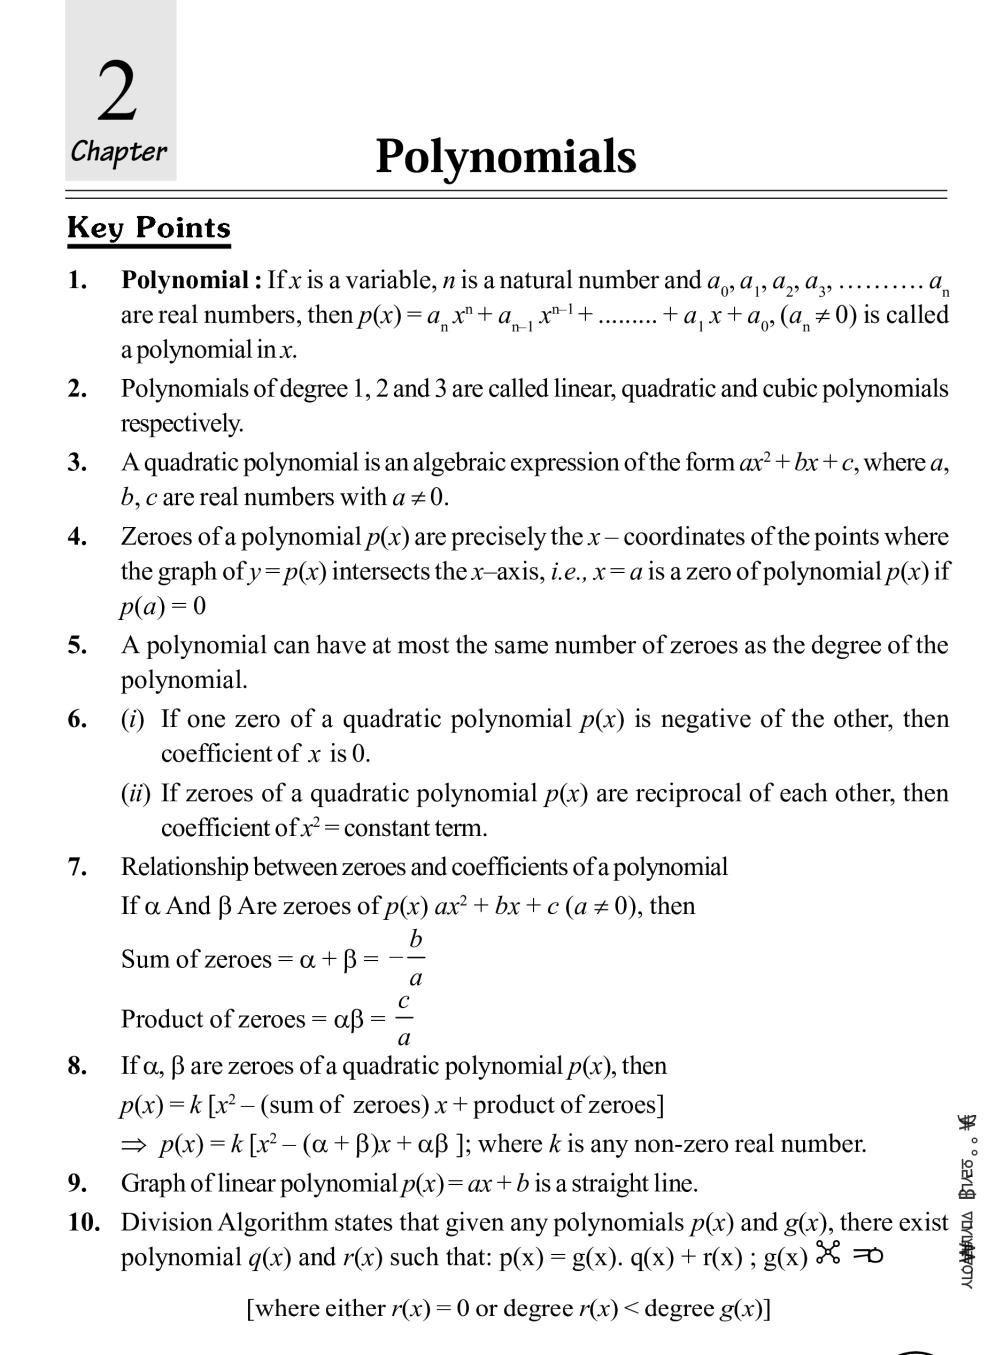 hight resolution of Class 10 Maths Notes for Polynomials in 2021   Math notes